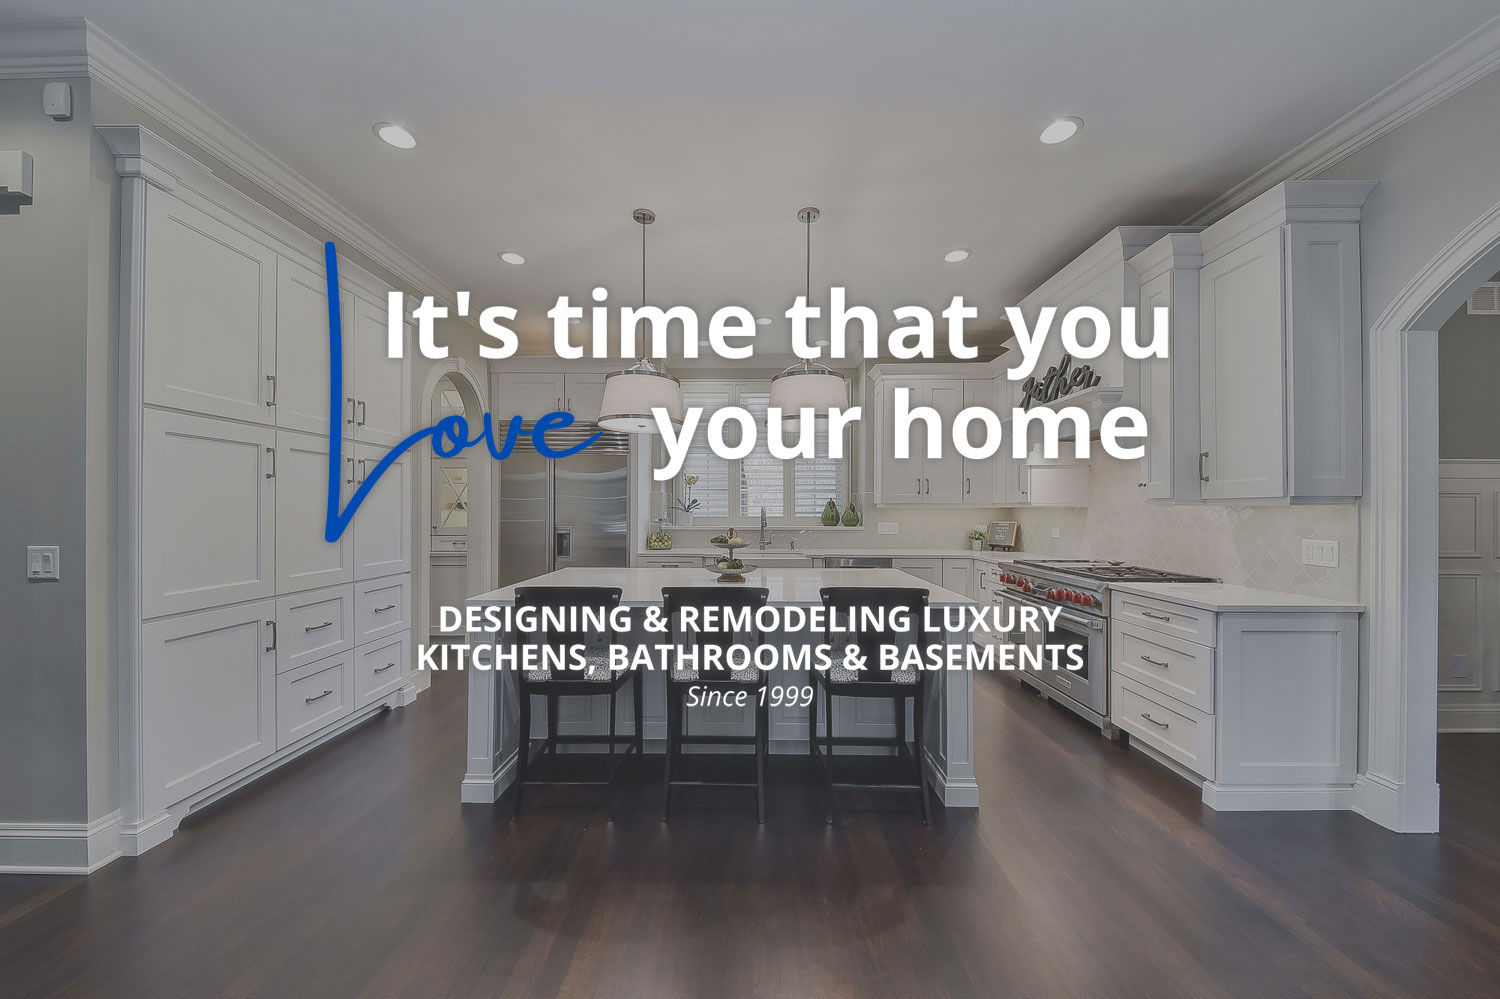 It's Time That You Love Your Home